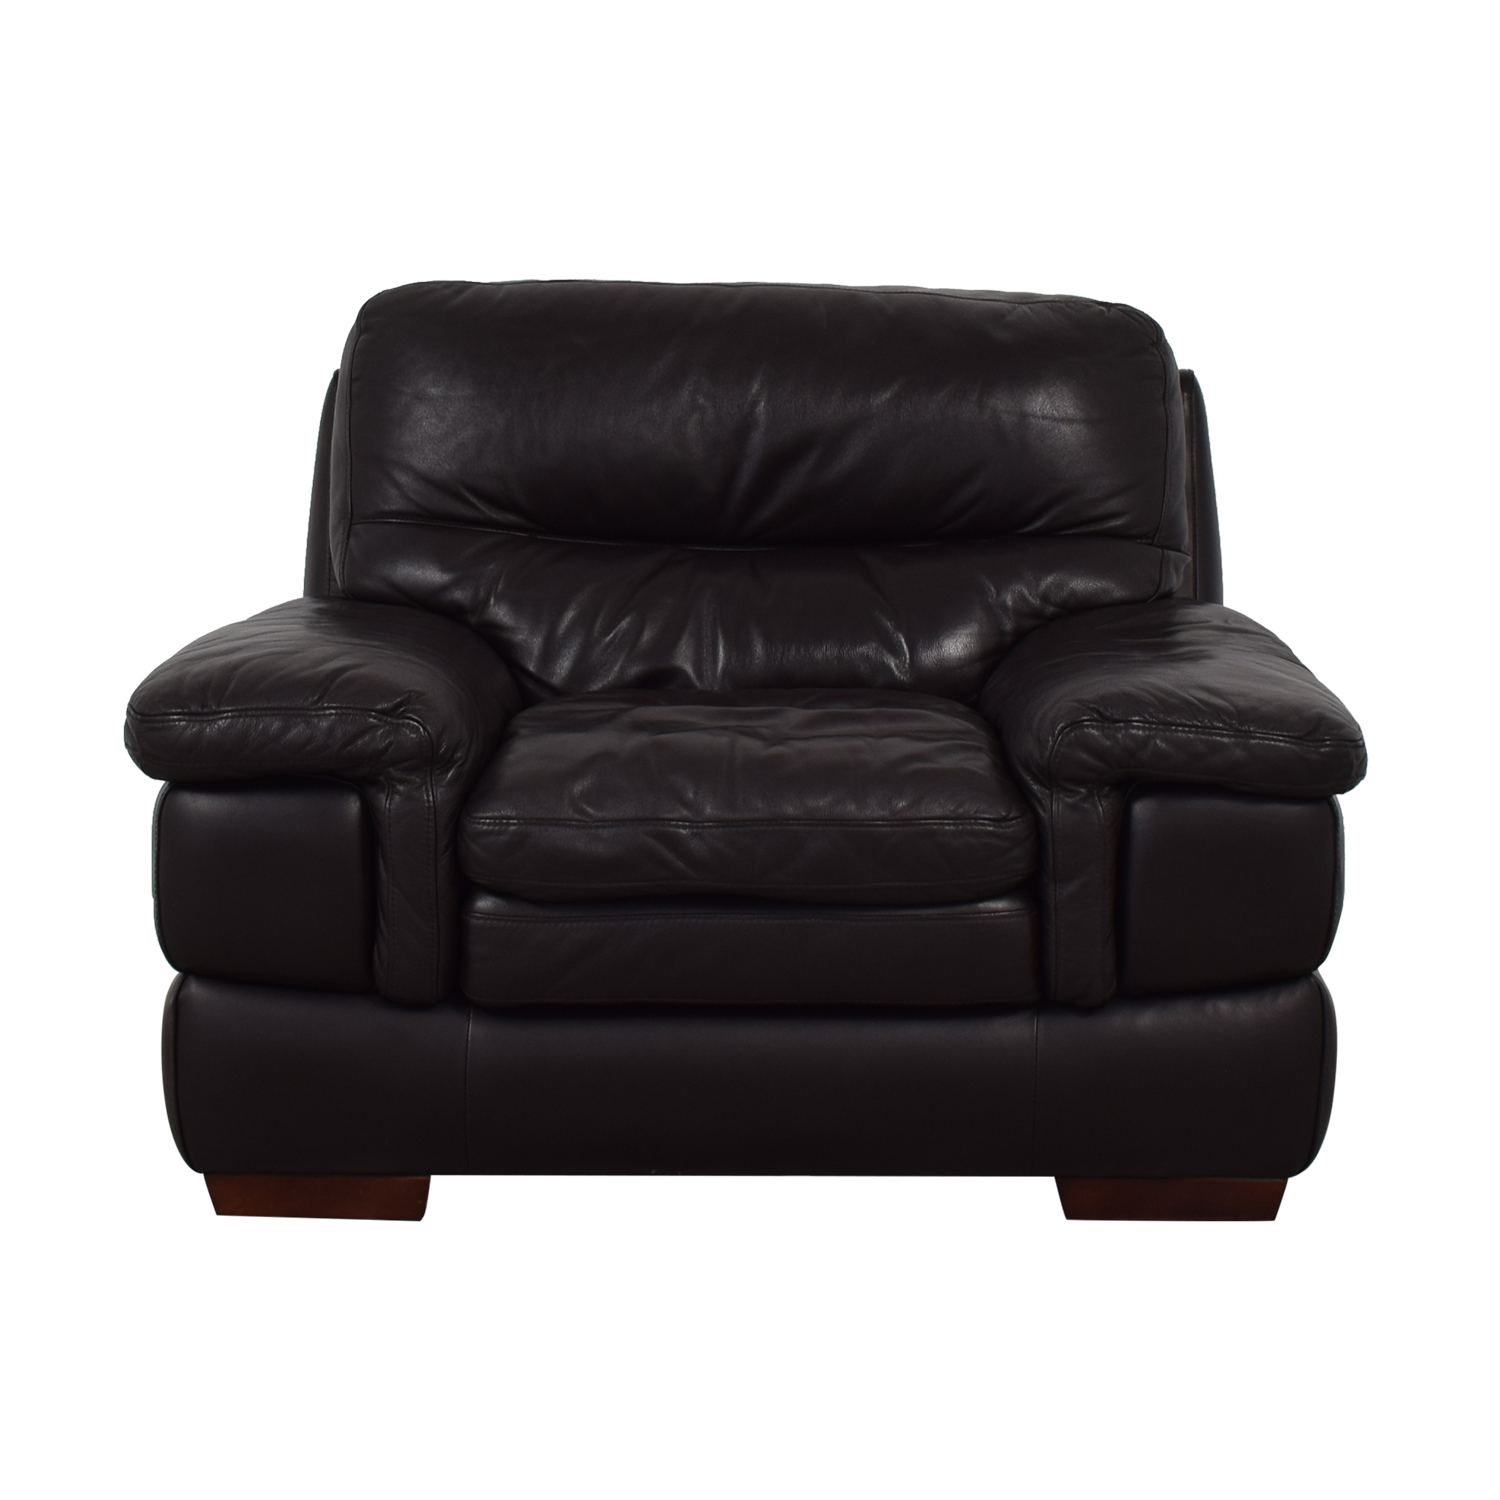 Bob's Discount Furniture Bob's Discount Furniture Brown Leather Accent Chair coupon